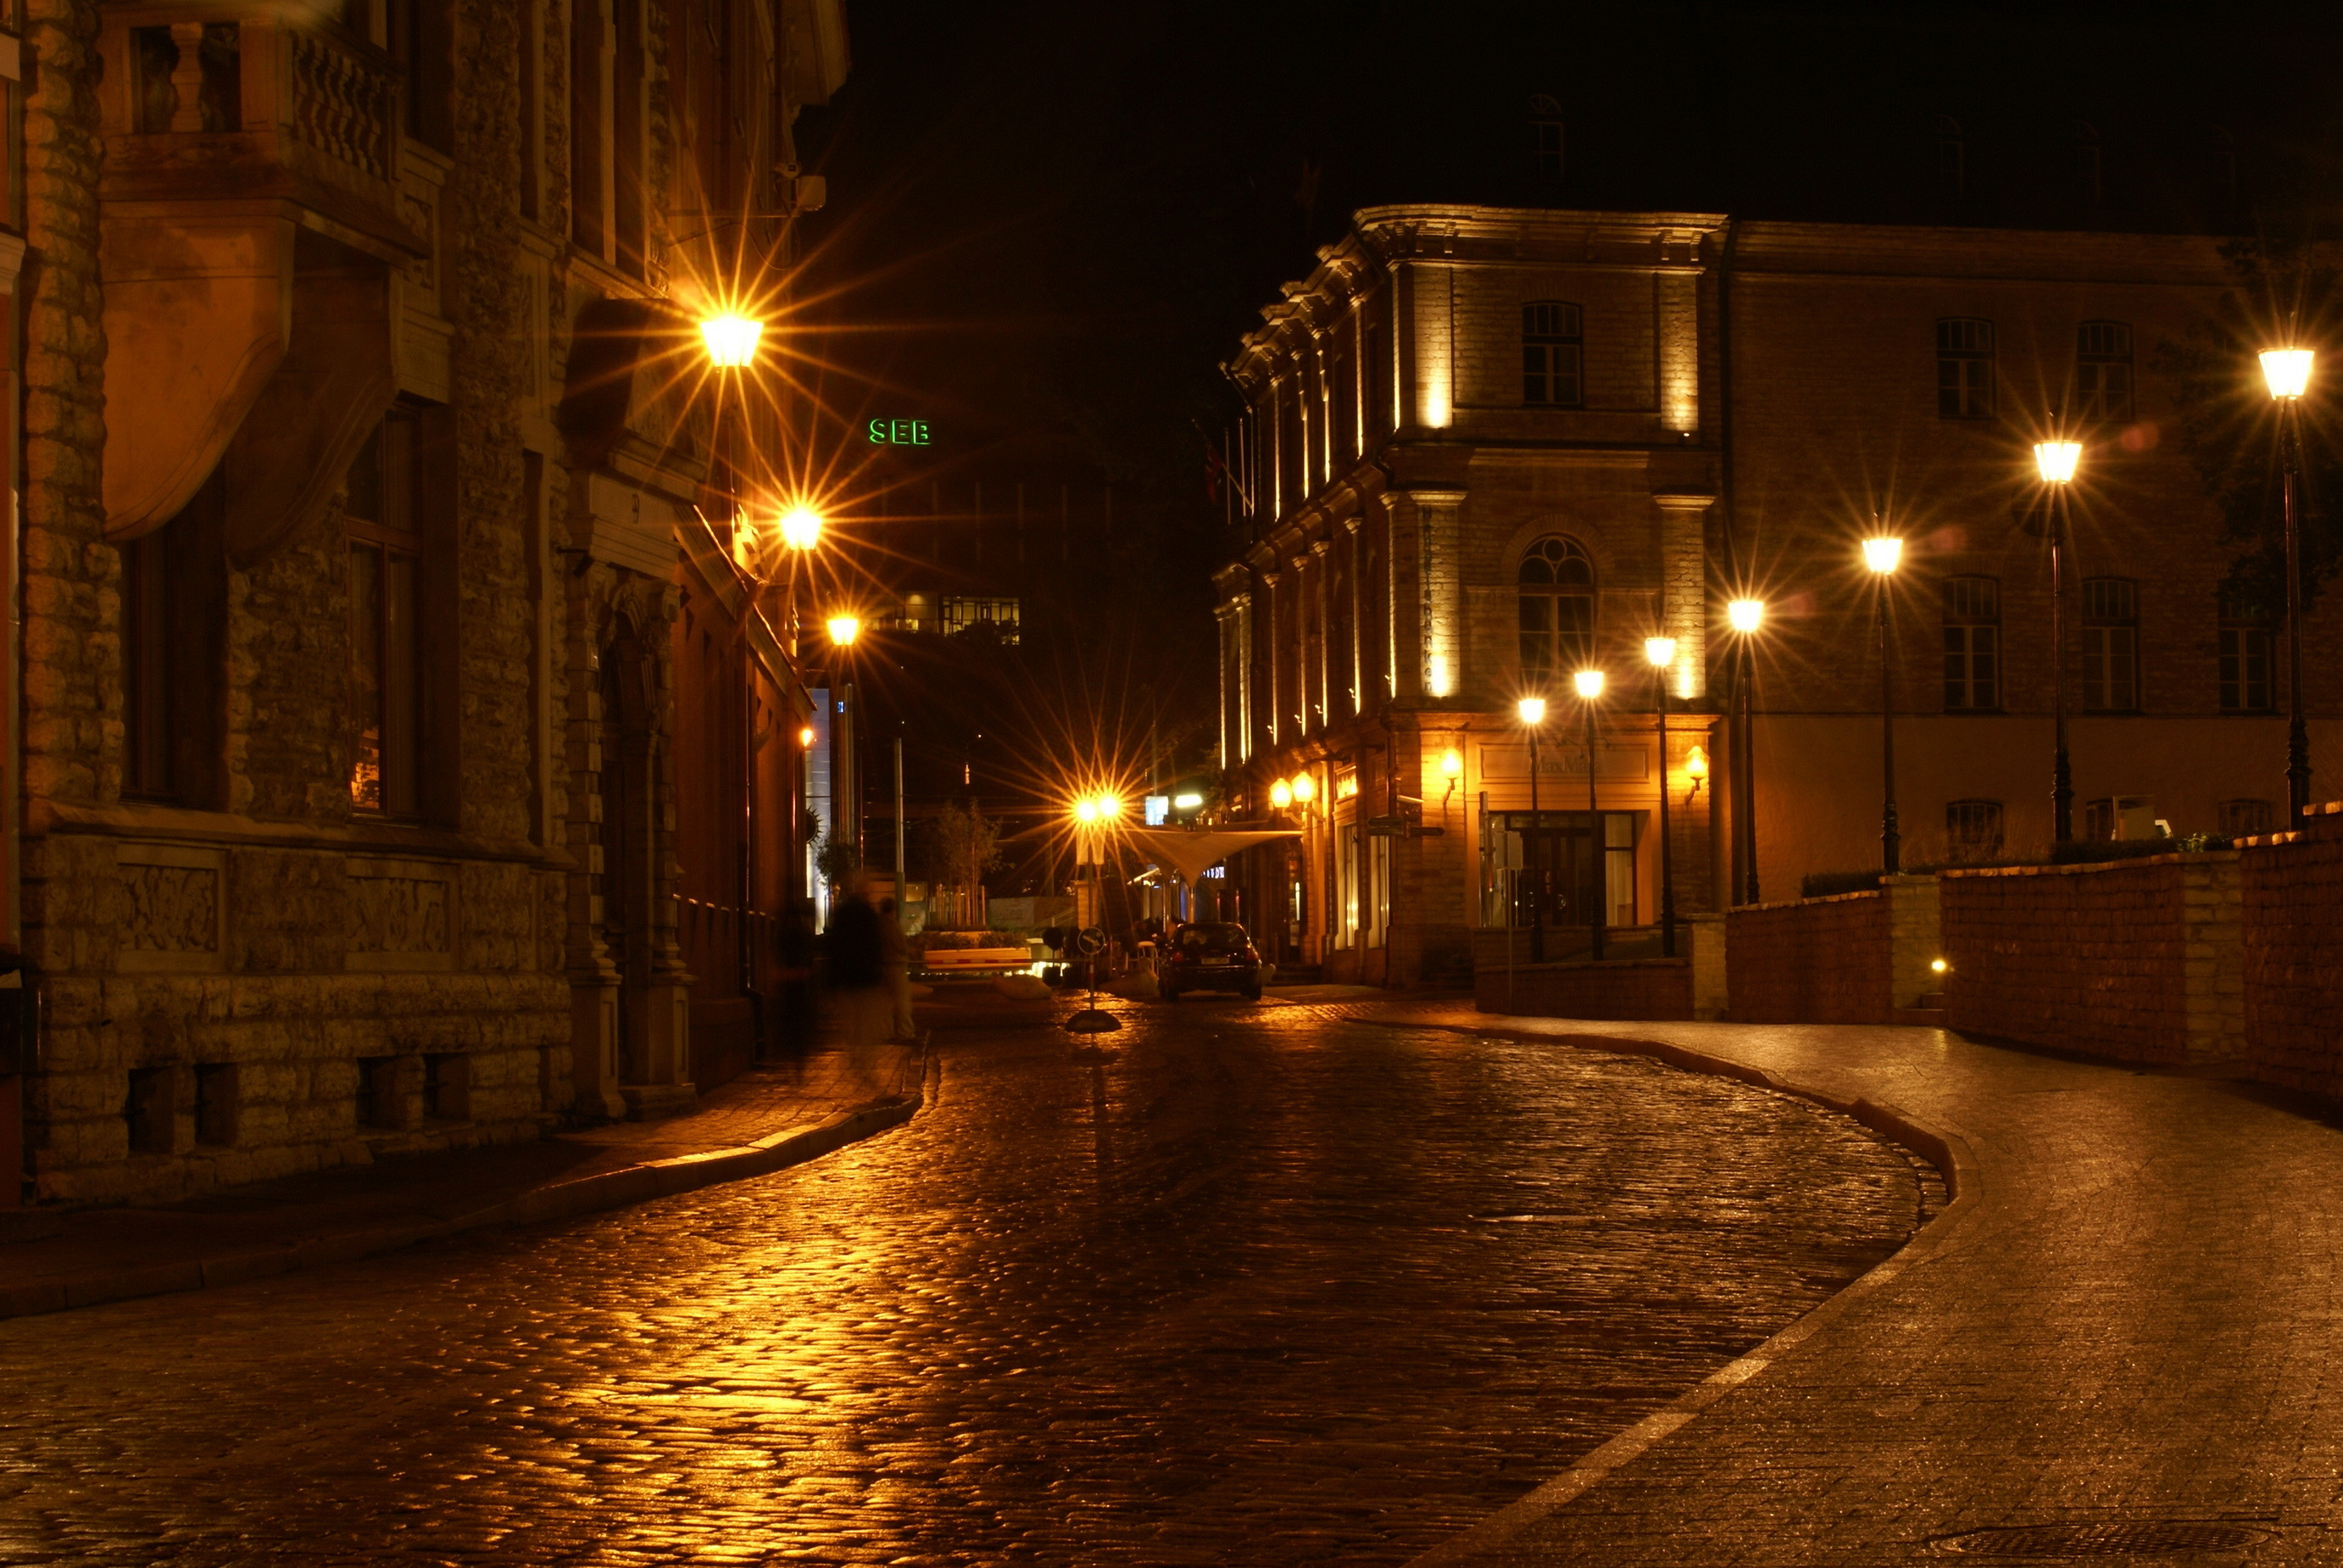 Baltics Roads Street lights HDR Rays of light Night Cities Wallpapers and  photos